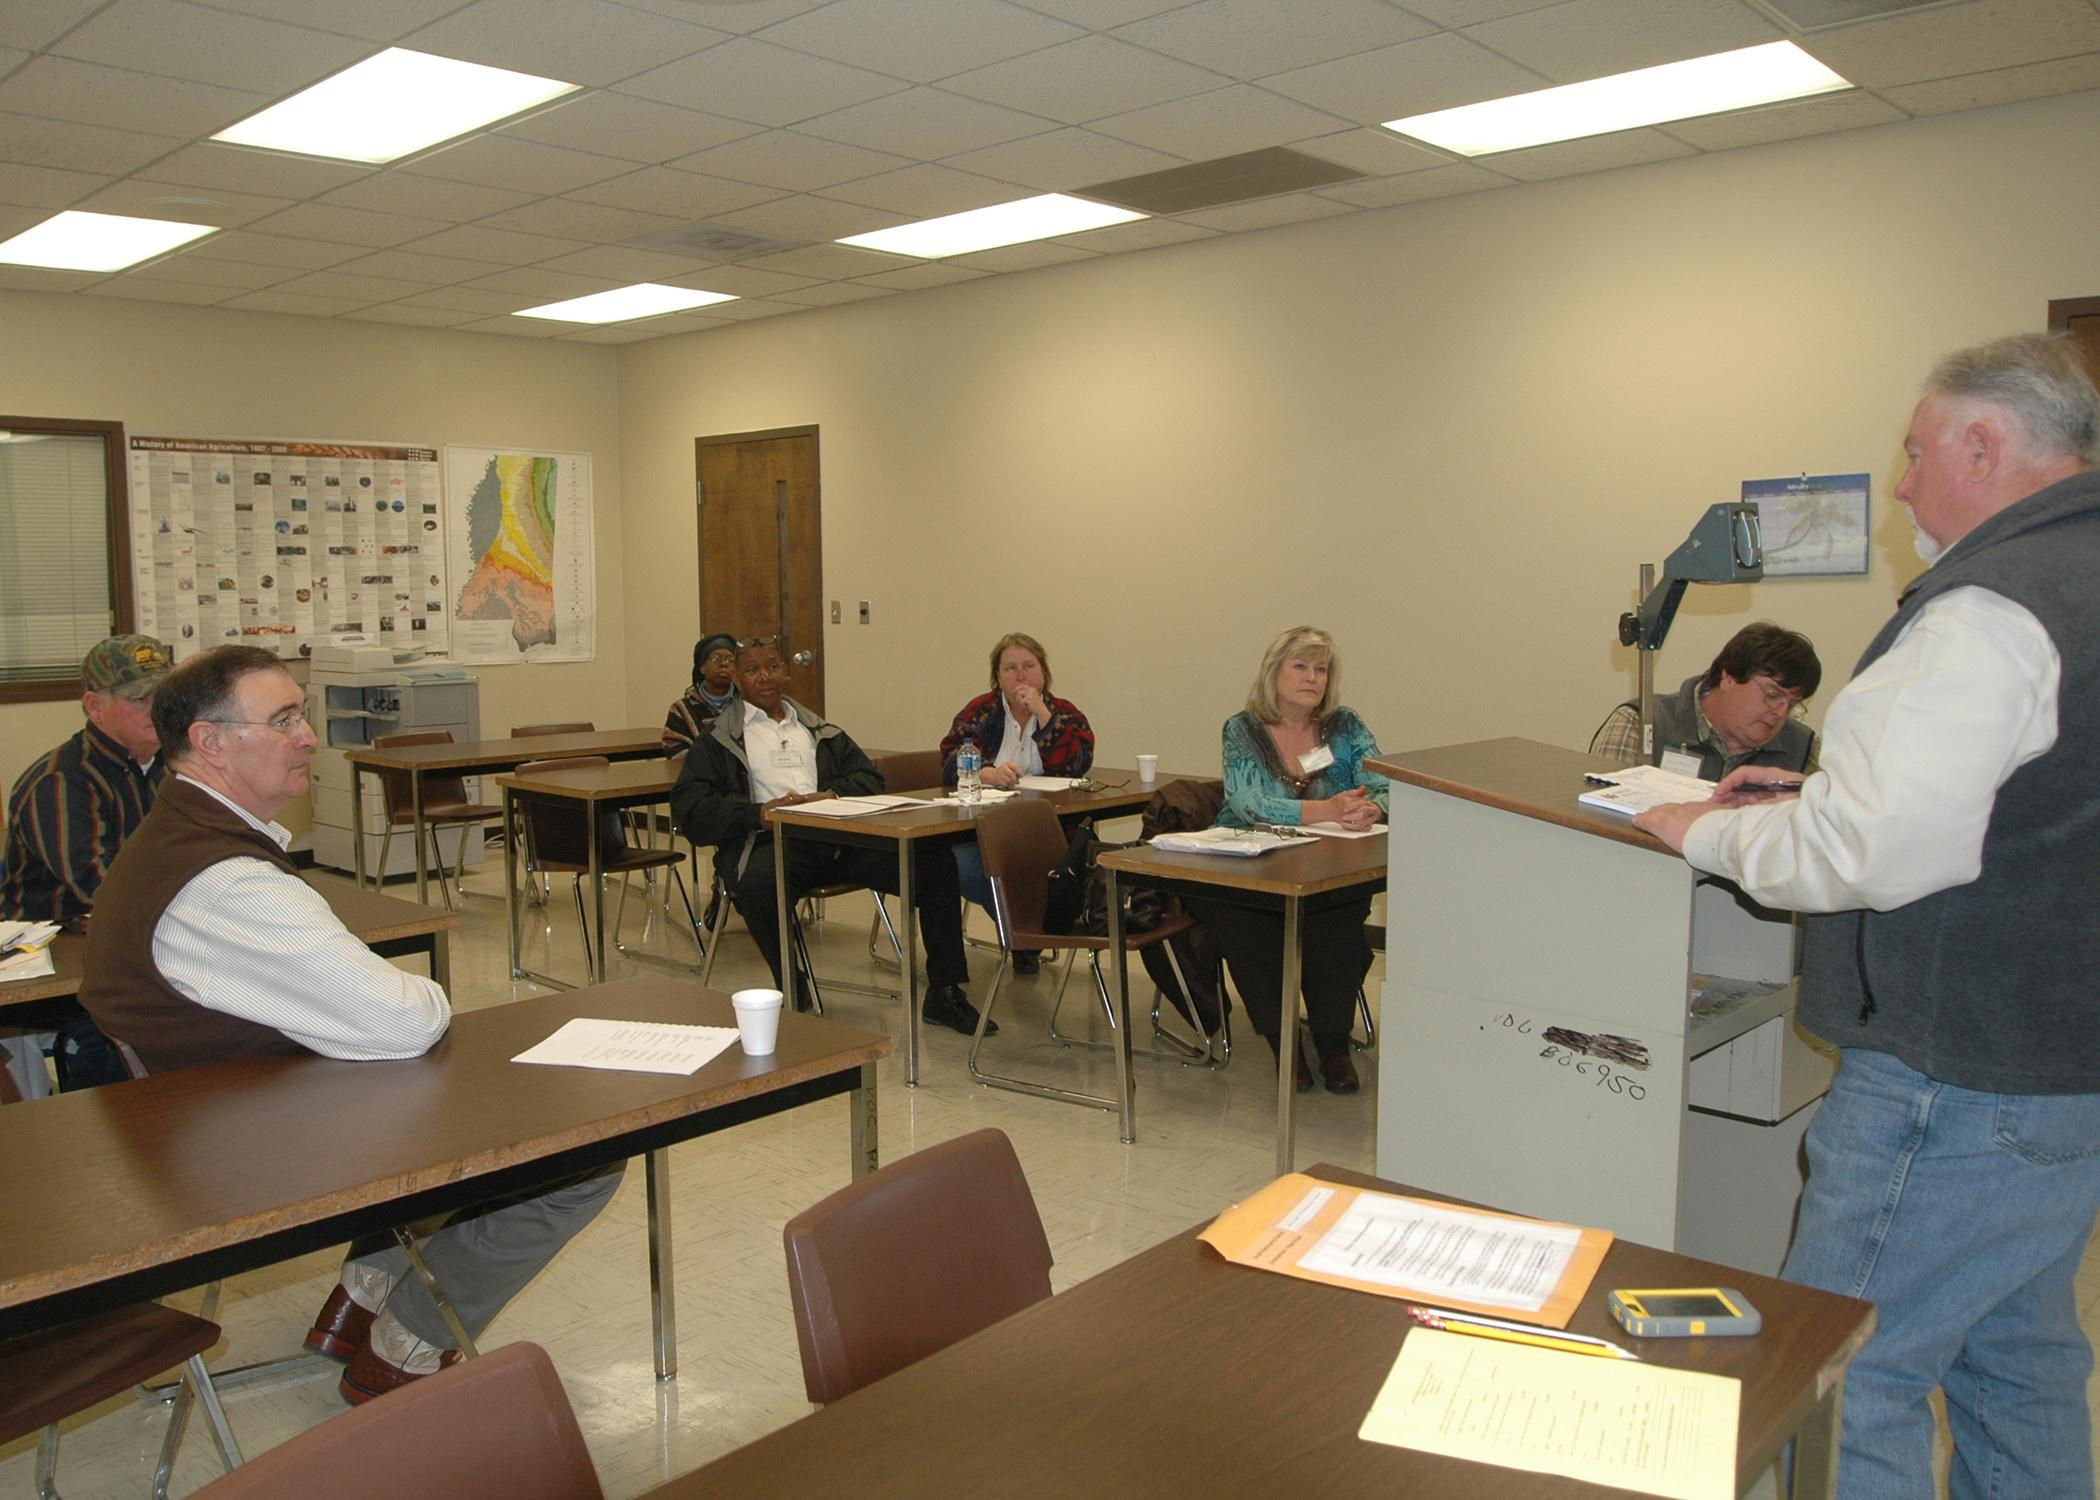 Kipp Brown, area meat goat agent in the Carroll County Extension Service office, led the small ruminant and swine commodity group's discussion during the Producer Advisory Council meeting Feb. 26 at Mississippi State University's Central Research and Extension Center. Nine commodity groups were represented at the meeting. (Photo by MSU Ag Communications/Susan Collins-Smith)